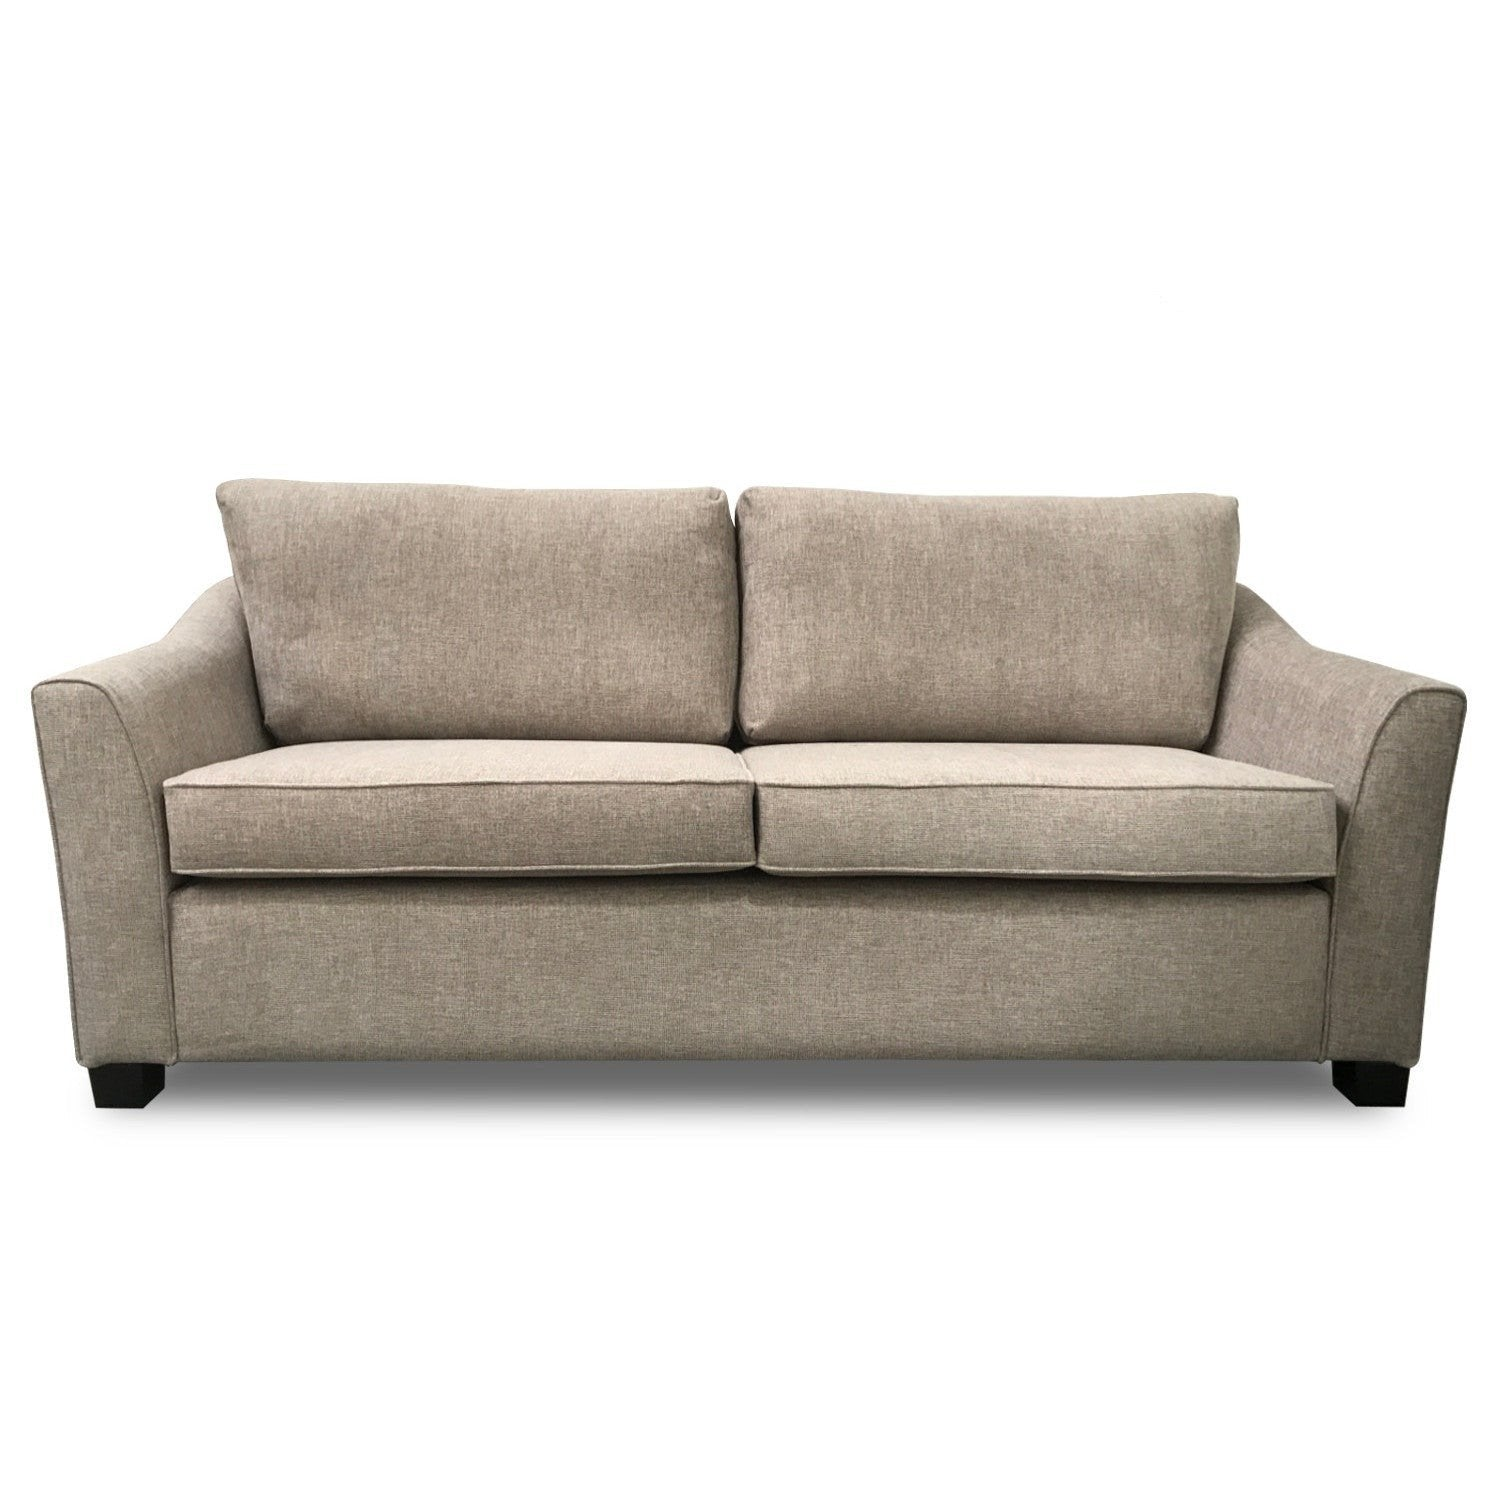 Henly 3 Seater Sofa - The Furniture Store & The Bed Shop